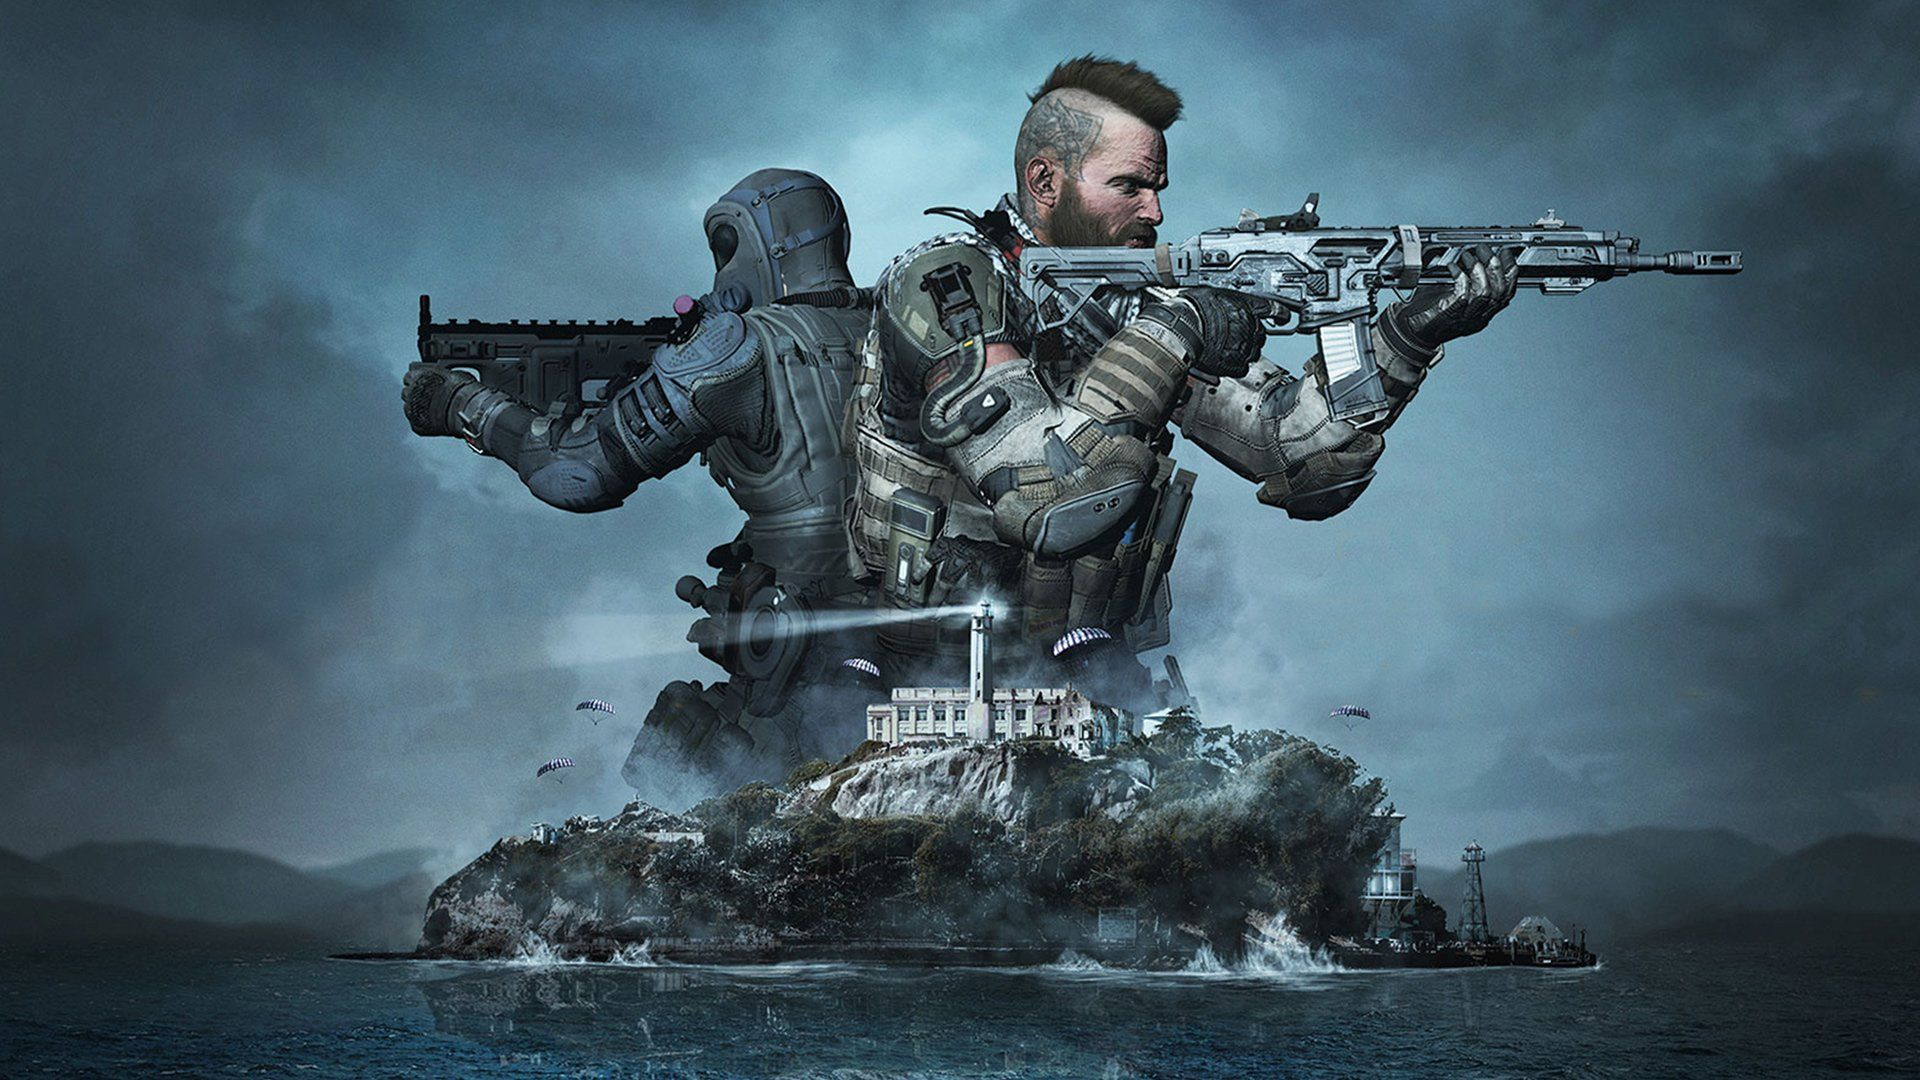 Call Of Duty Blackout 23 Kill Win On New Alcatraz Map Steven Bobby Alexio And Andres Try Out The New Alcatraz Ma Call Of Duty Black Call Of Duty 4k Background